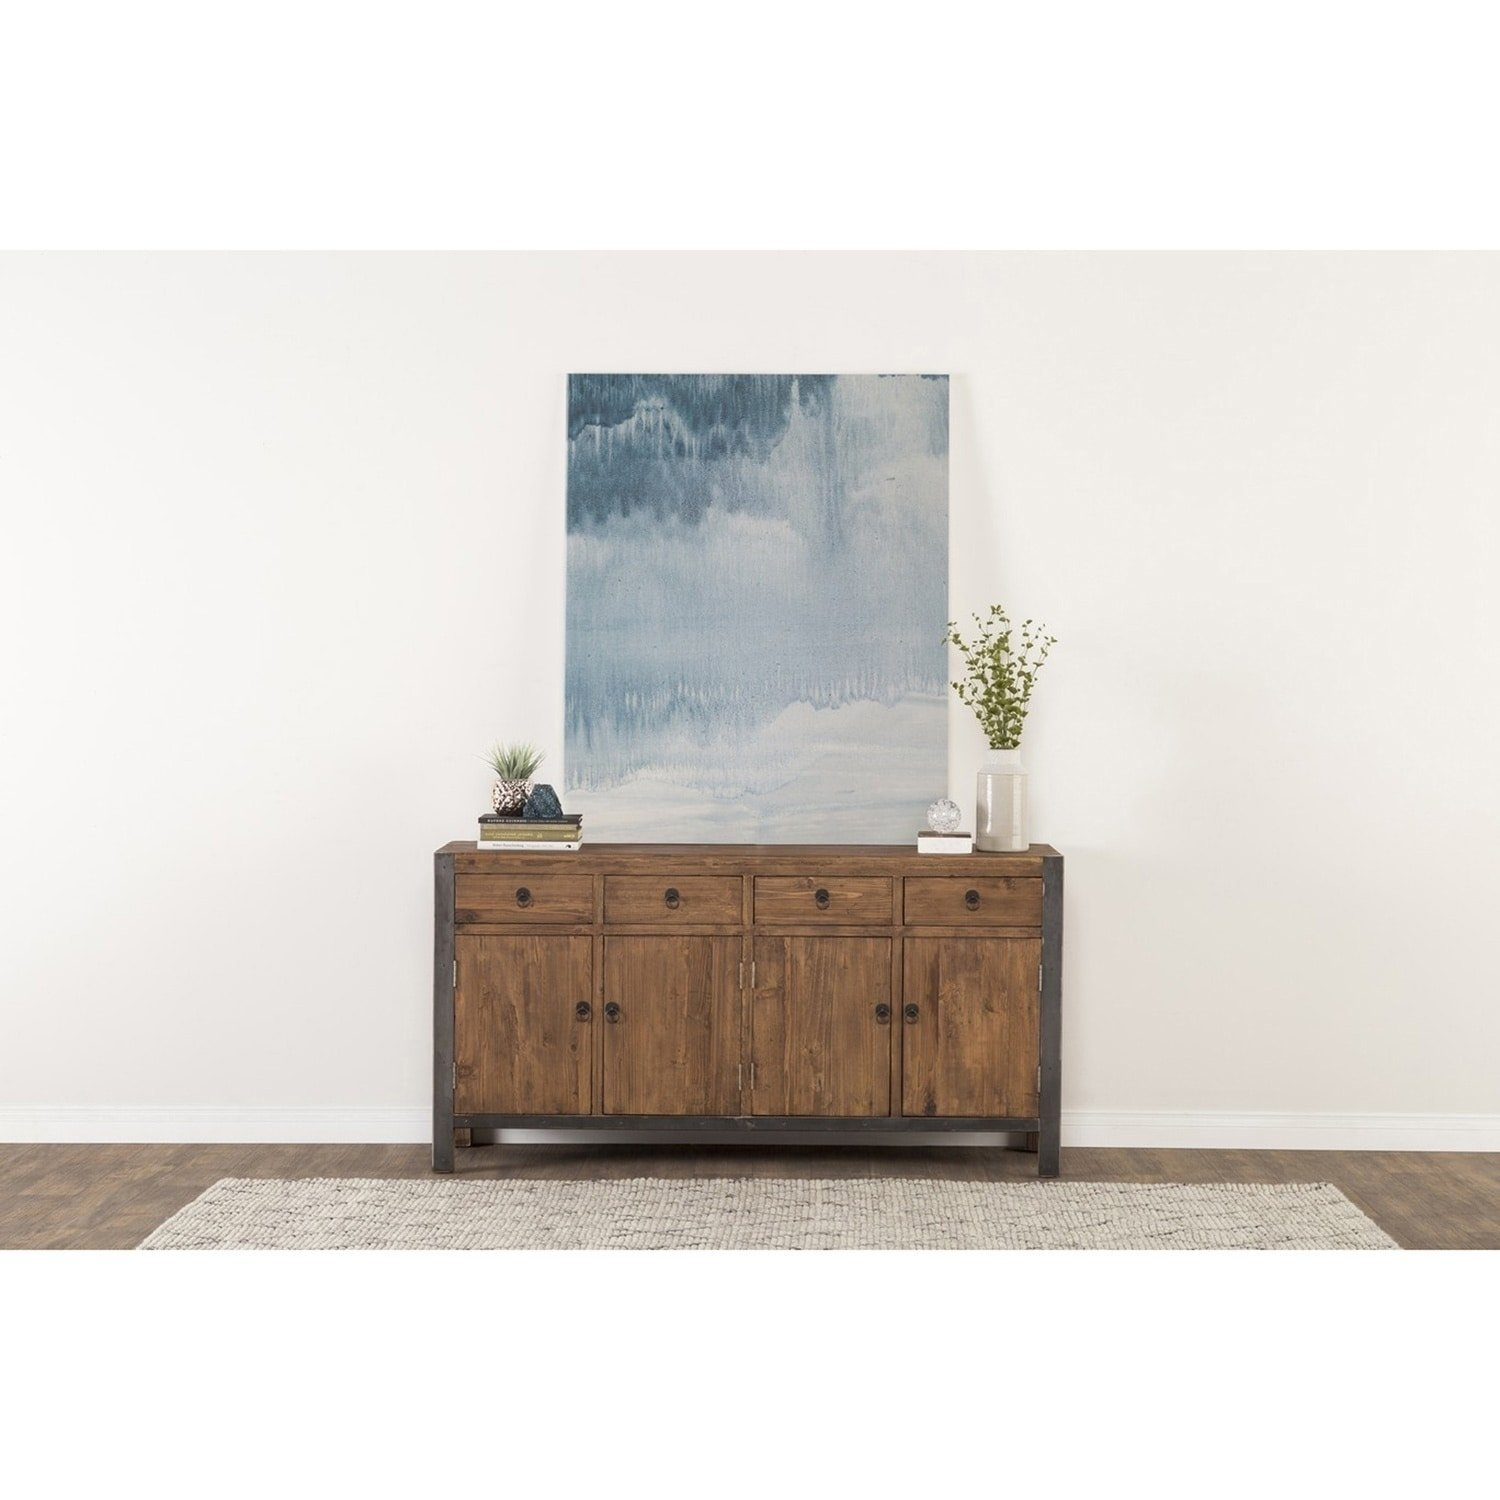 Shop Willow Reclaimed Wood And Iron 70 Inch Buffetkosas Home With Regard To Best And Newest Reclaimed Pine & Iron 72 Inch Sideboards (View 9 of 20)